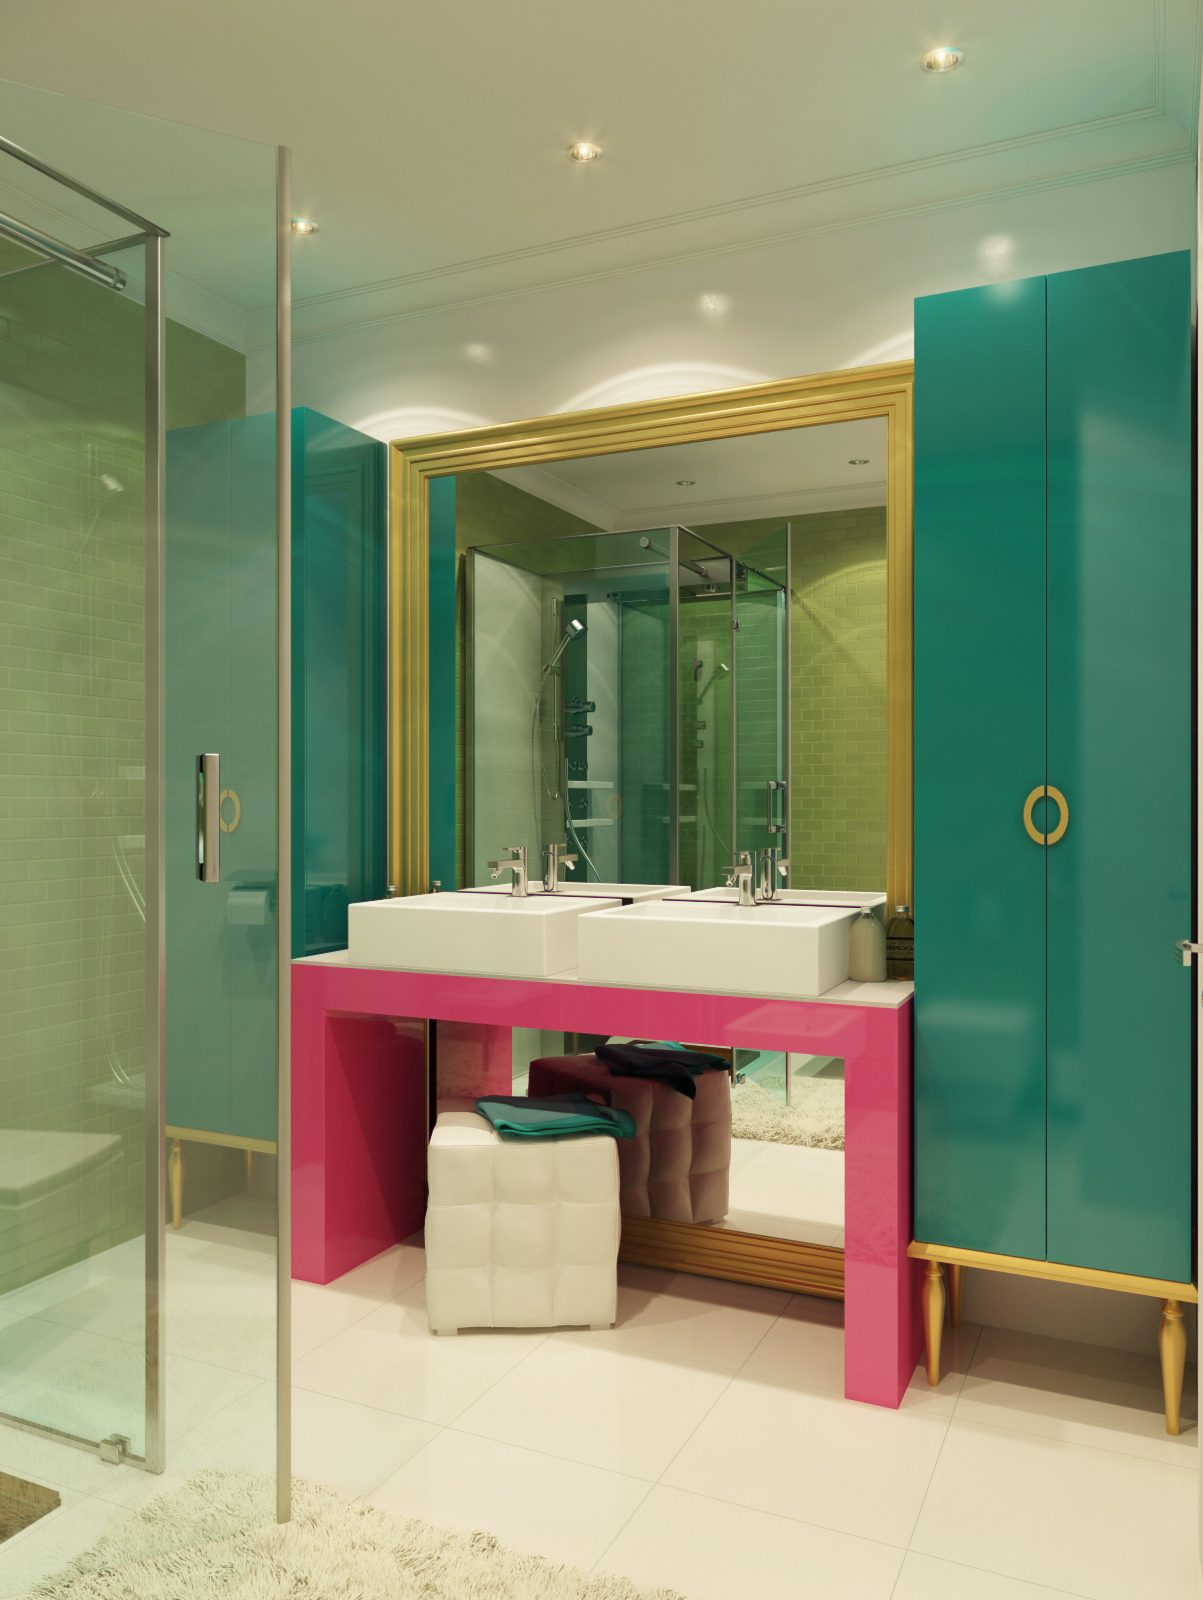 Colorful bathroom decoration - Colorful Bathroom Decoration 6